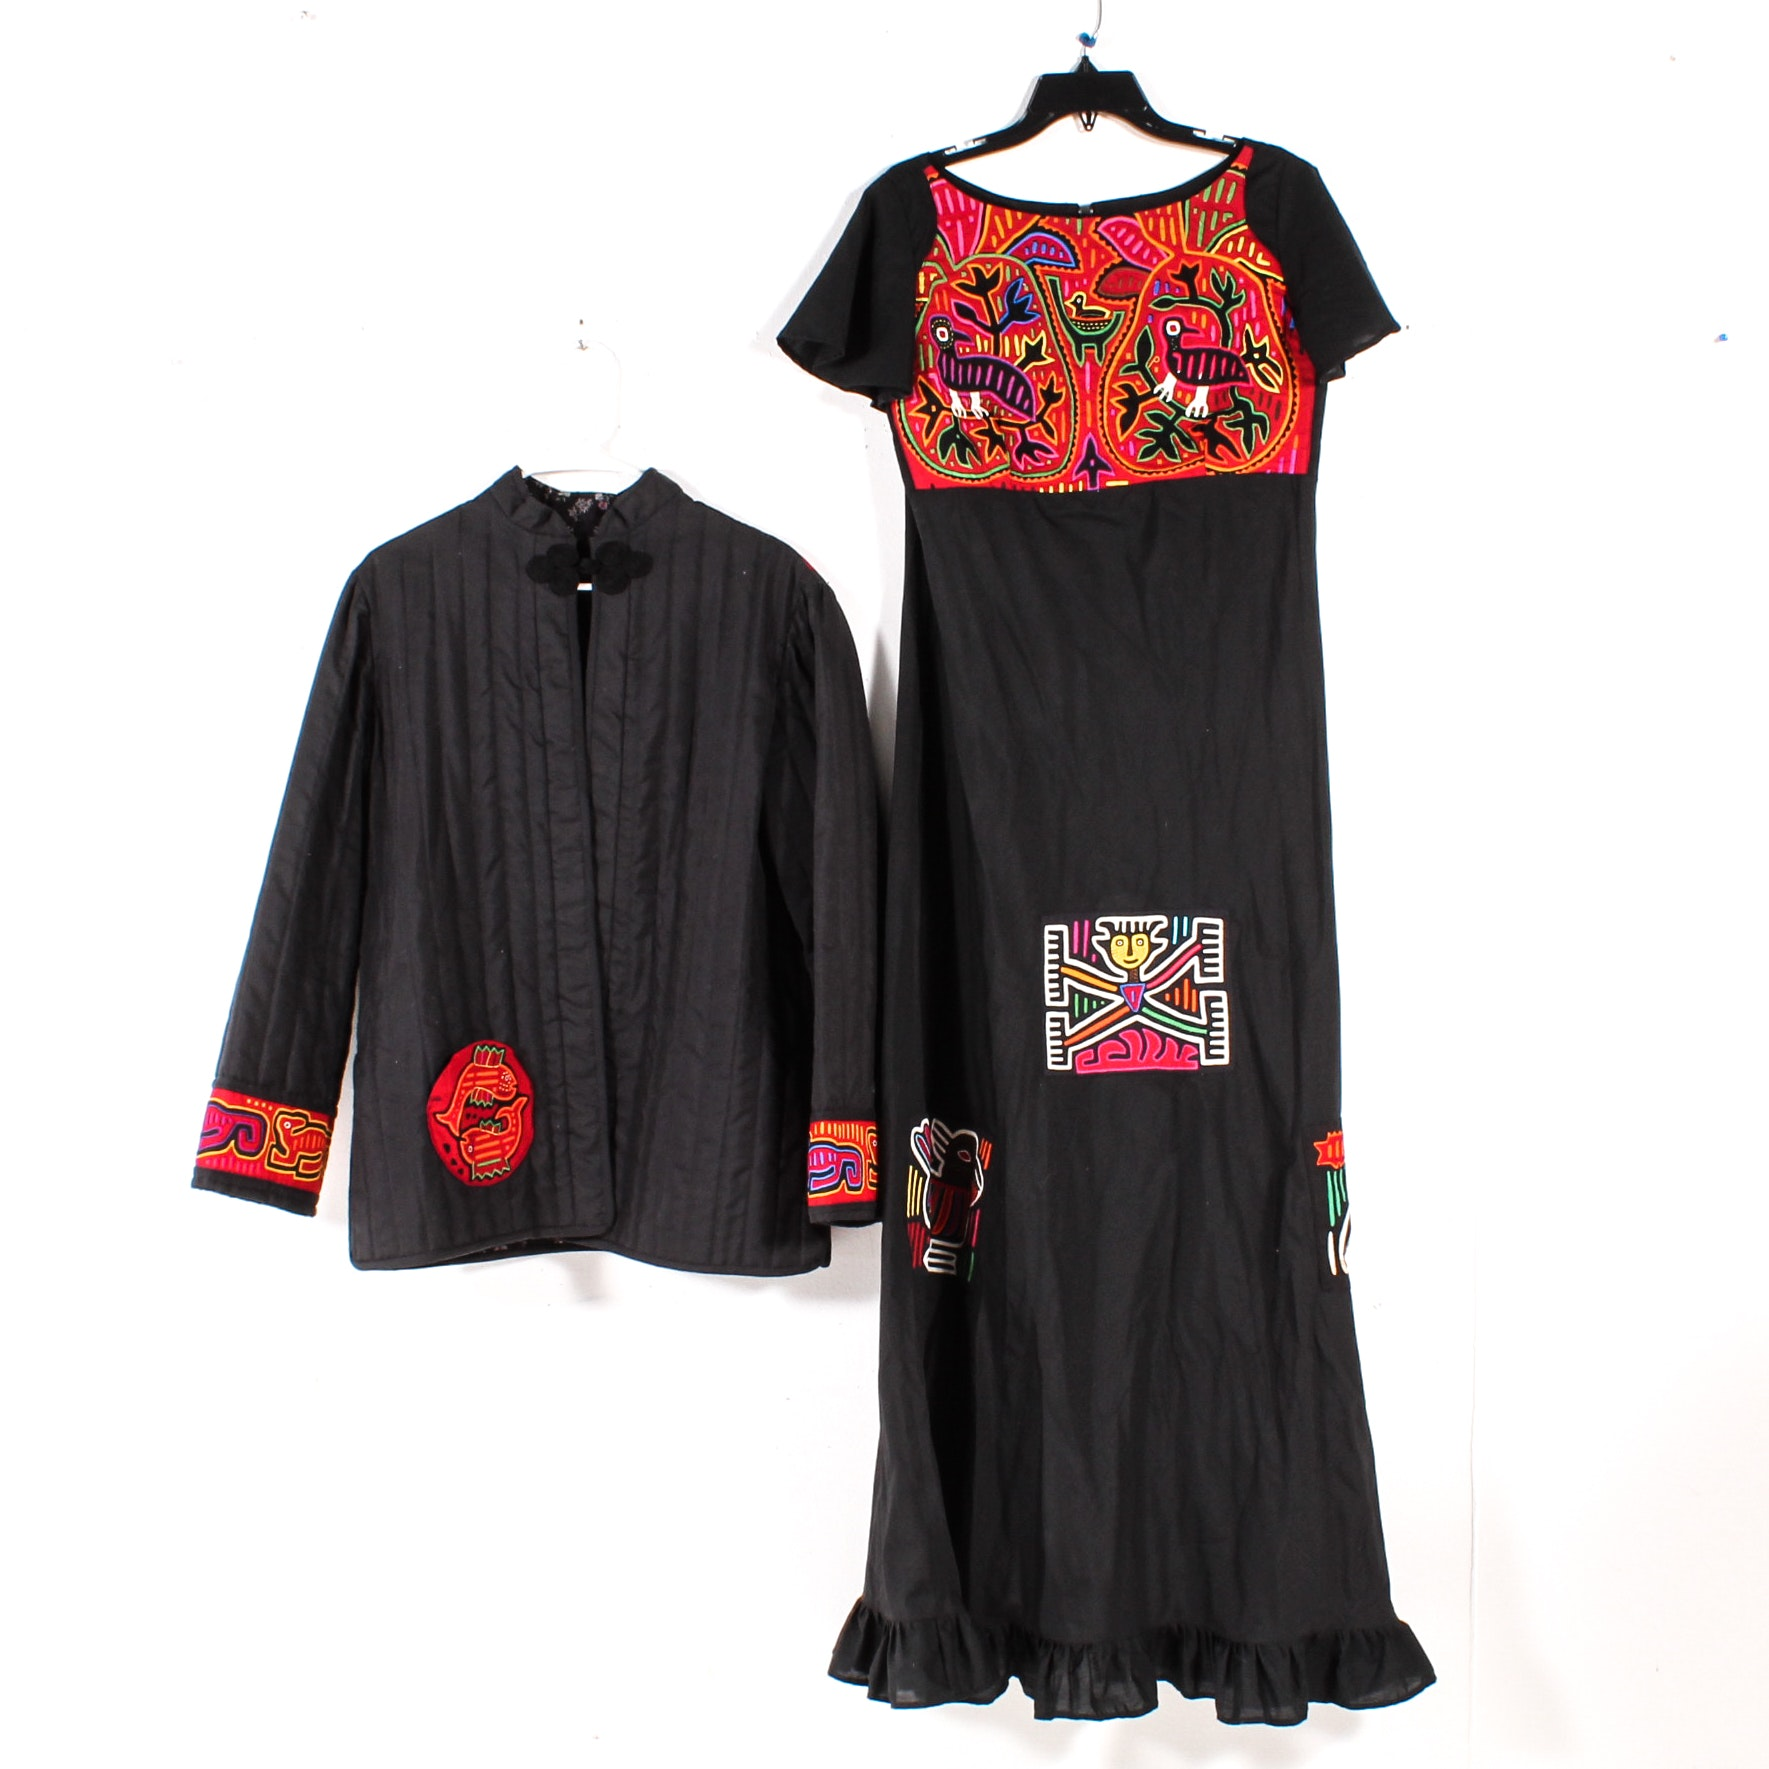 Handmade Jacket and Dress with Panamanian Mola Decorations